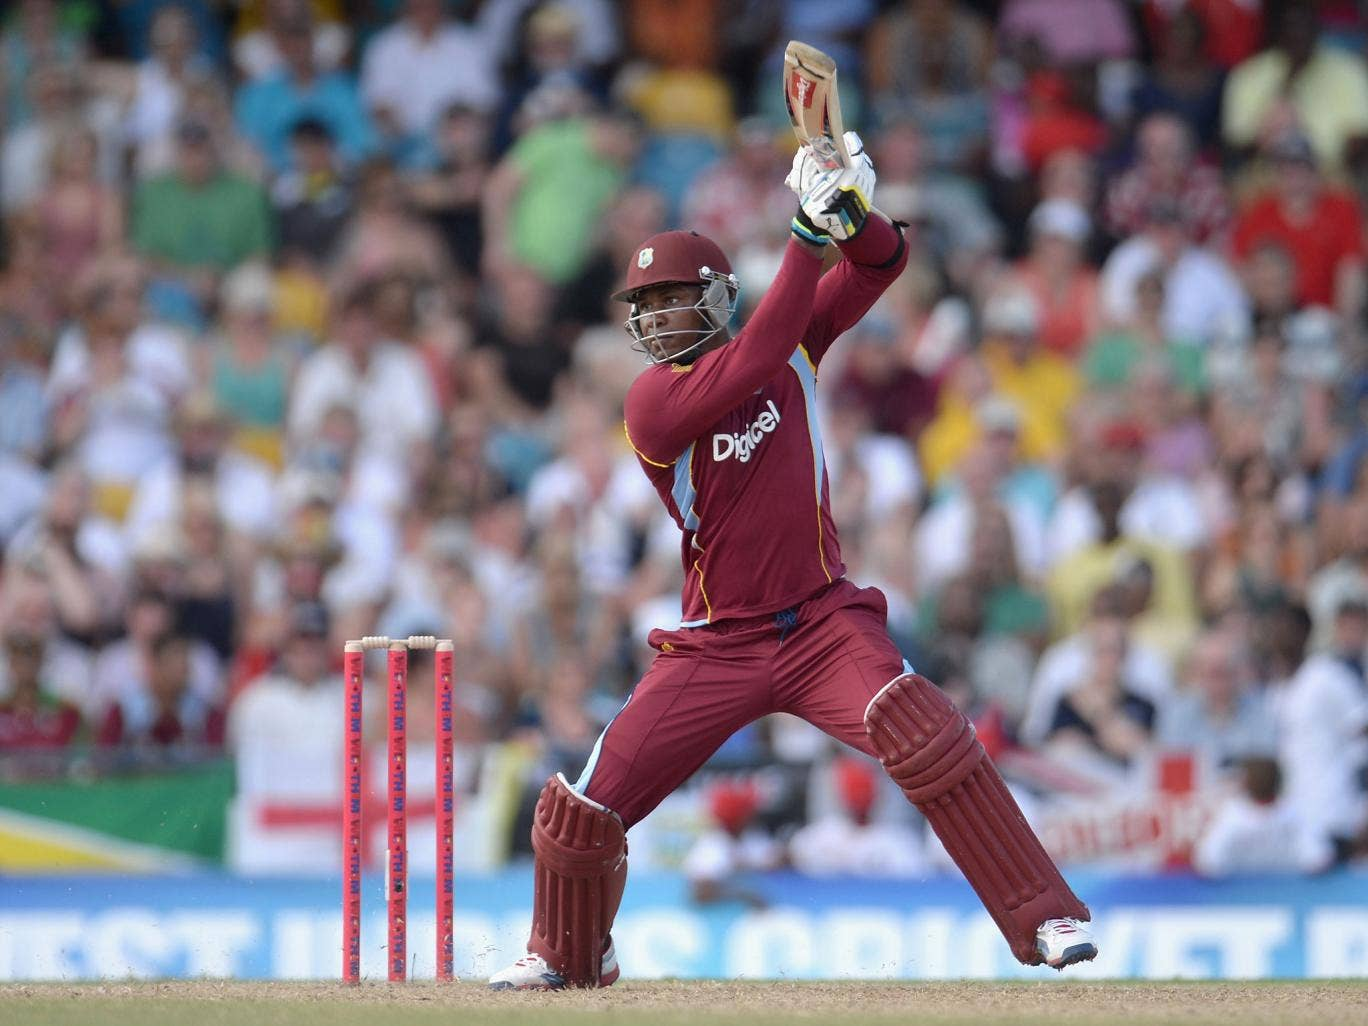 Marlon Samuels smashed 69 not out from 46 balls for West Indies